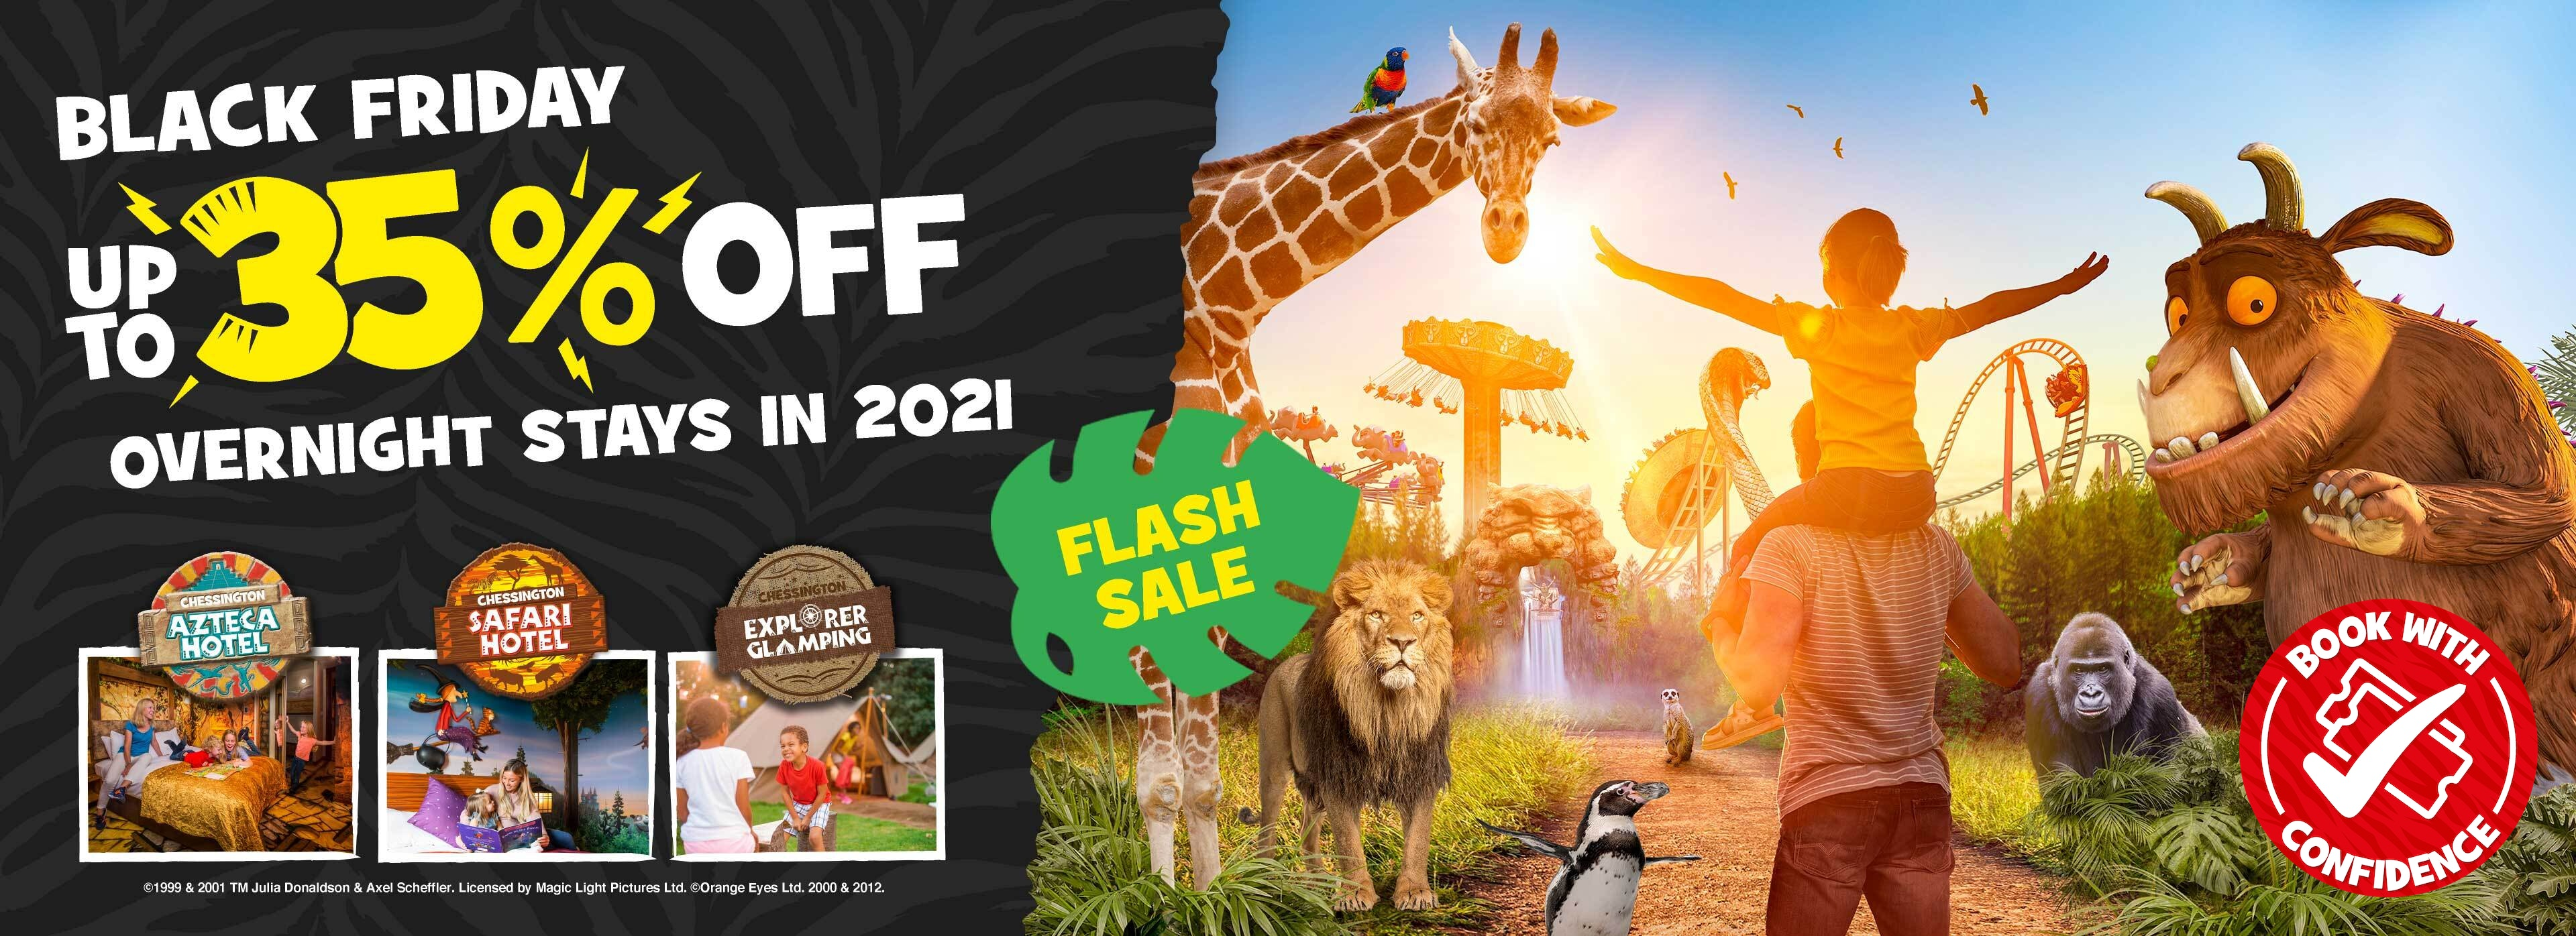 Black Friday at Chessington World of Adventures Resort